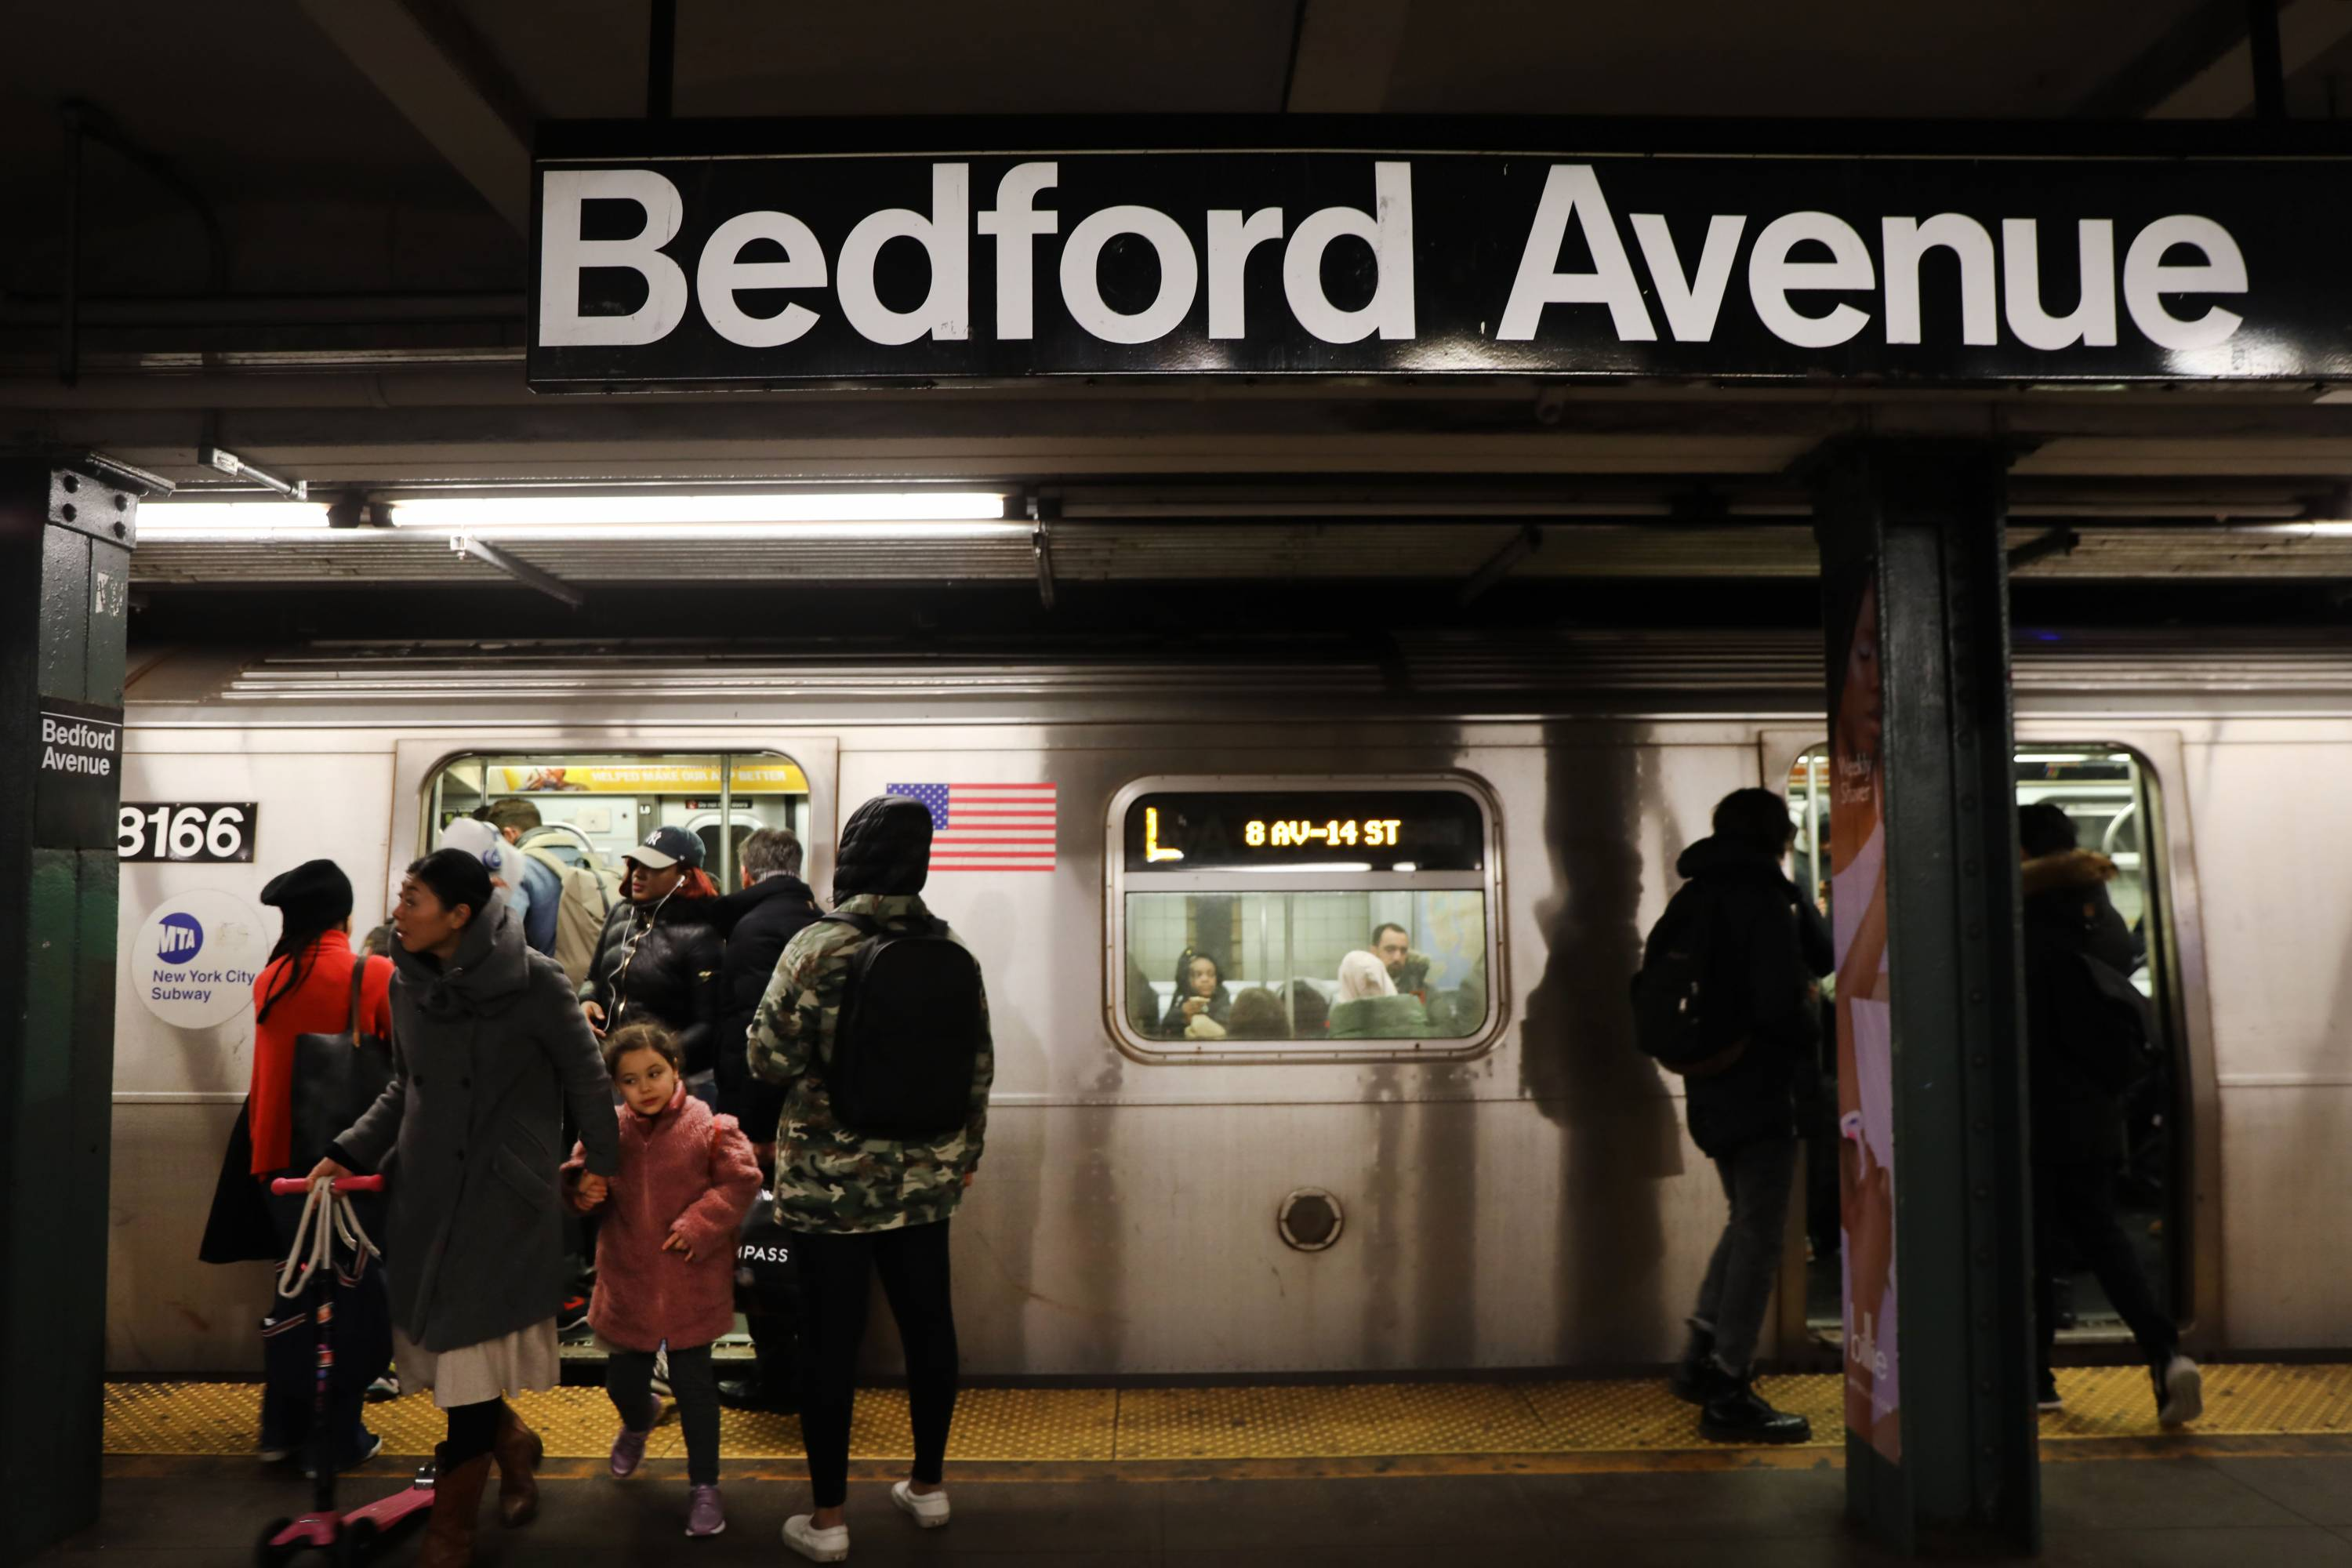 Plan To Cease The Previously Long-Planned Full Shutdown Of L Train Announced By Governor Cuomo